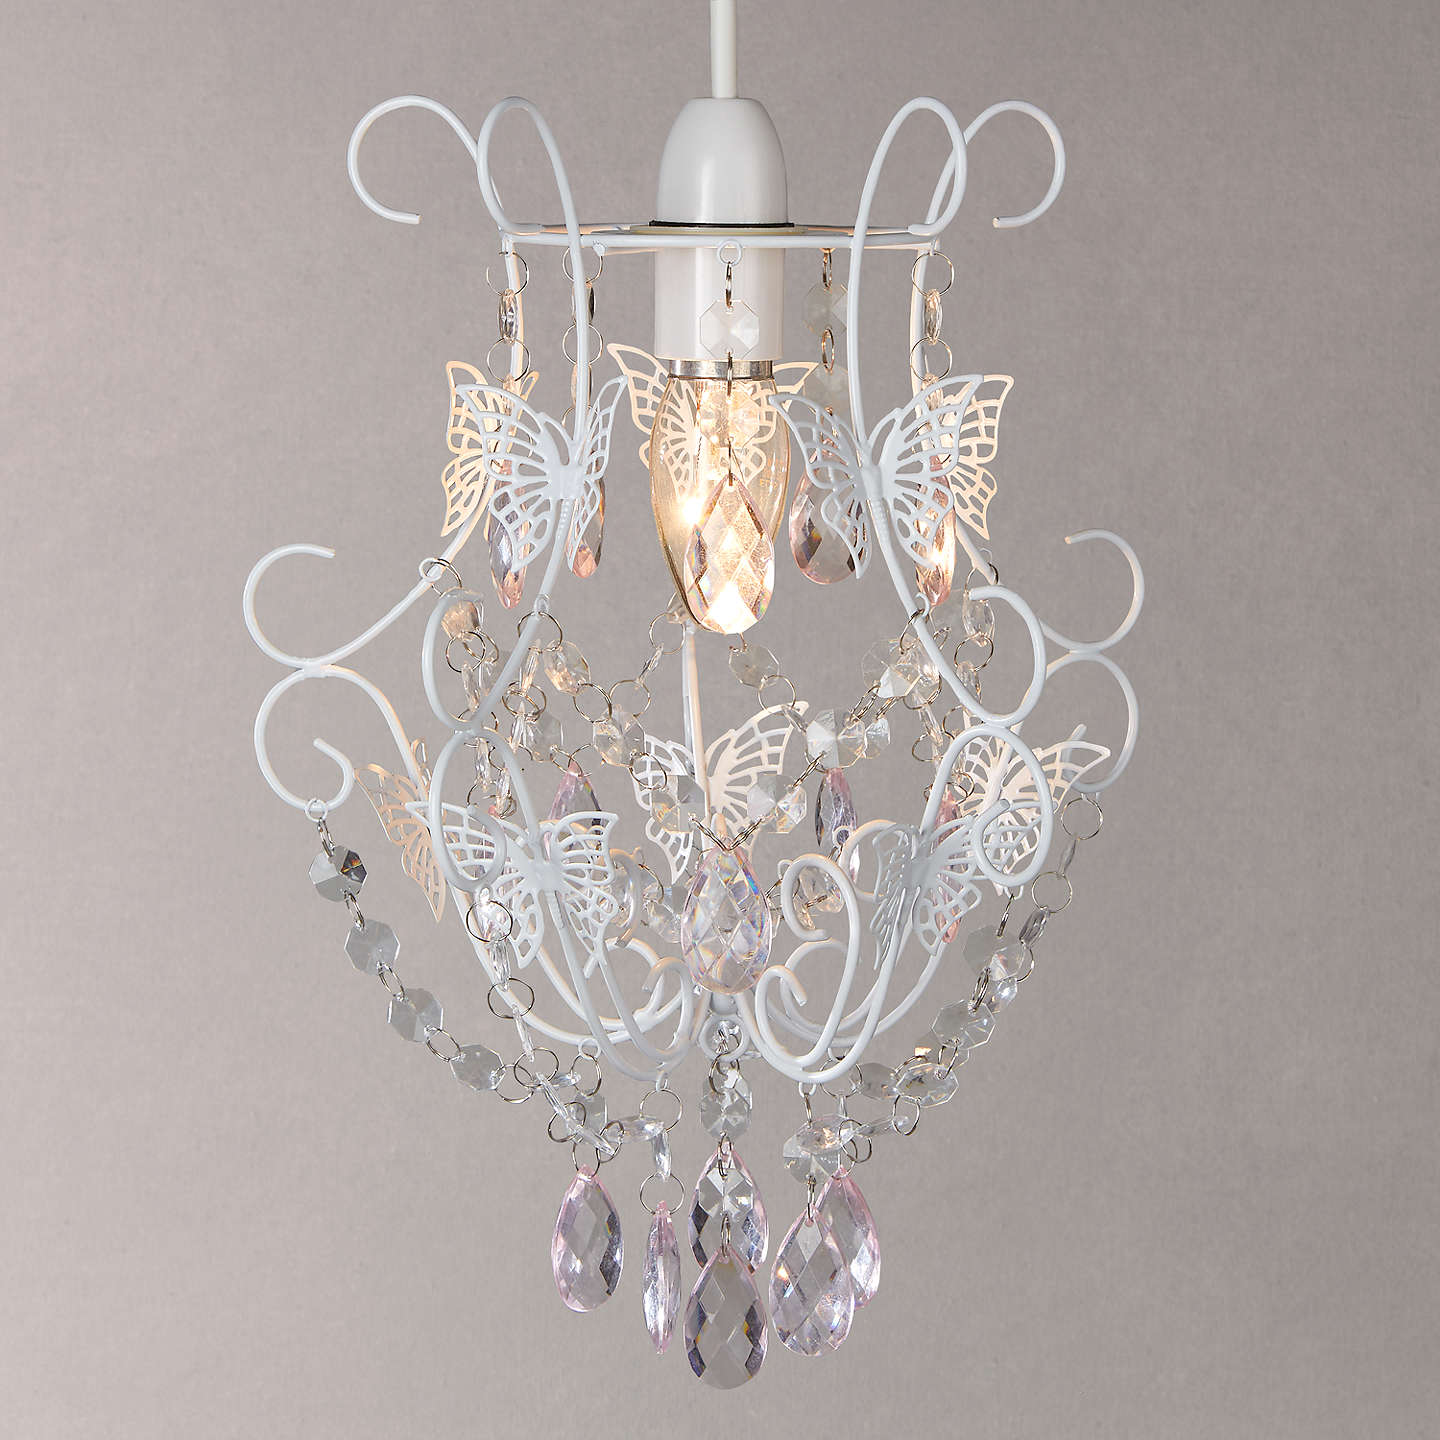 Little home at john lewis little fairy chandelier lampshade at john buylittle home at john lewis little fairy chandelier lampshade online at johnlewis aloadofball Image collections